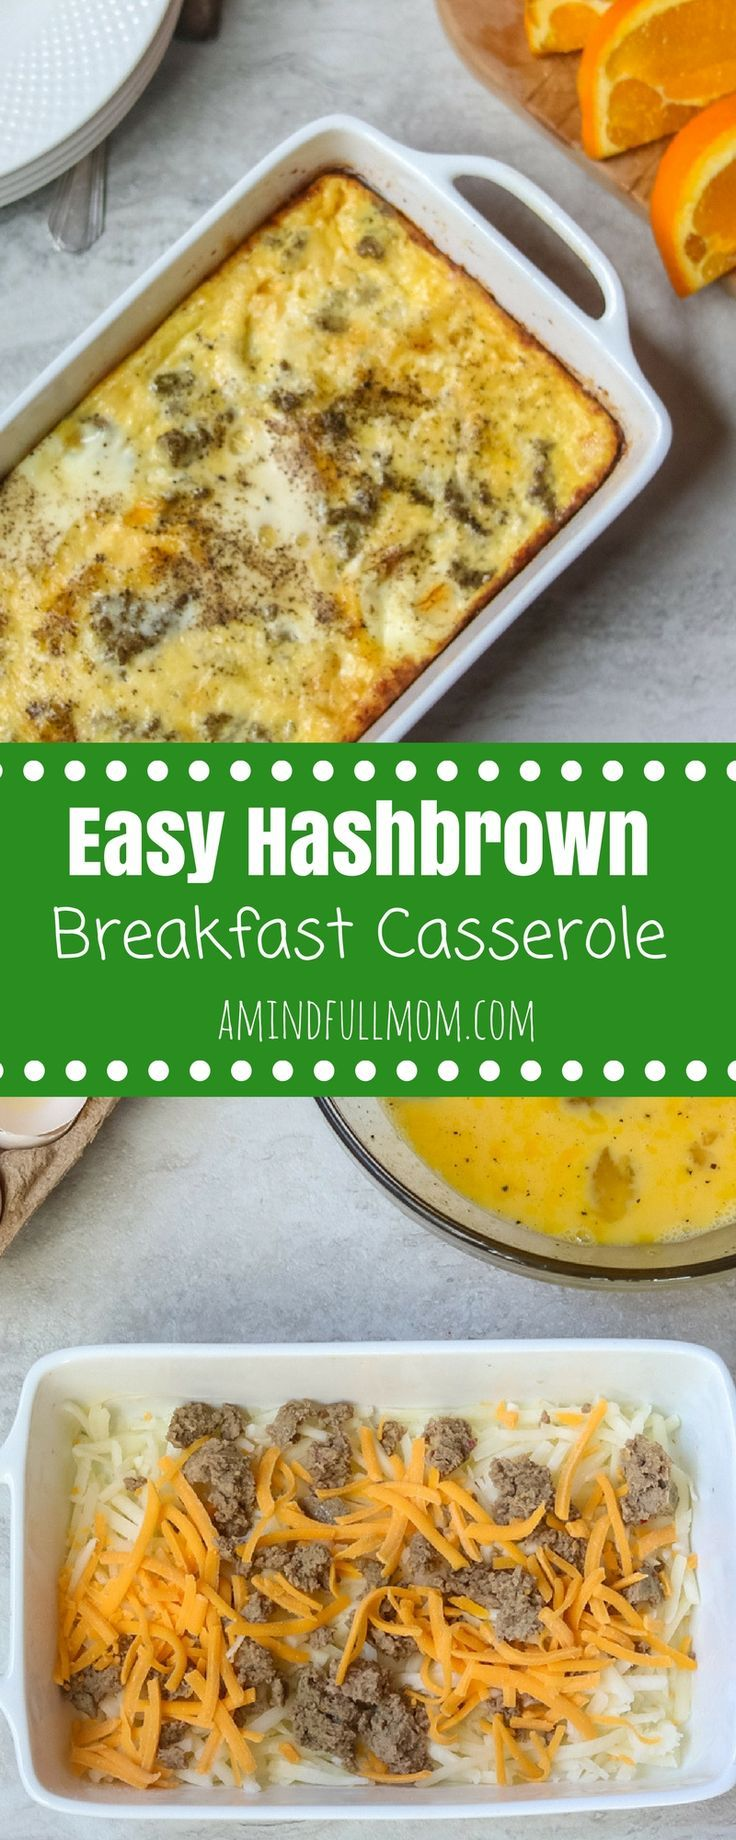 Easy Hashbrown Breakfast Casserole: An easy breakfast casserole is made with frozen hashbrowns, eggs, sausage and cheese. This will become your go-to casserole for breakfast--perfect for a feeding a crowd, allergy-friendly, and can be made the night before or the morning of. #breakfast #breakfastcasserole #eggcasserole #glutenfree via @amindfullmom